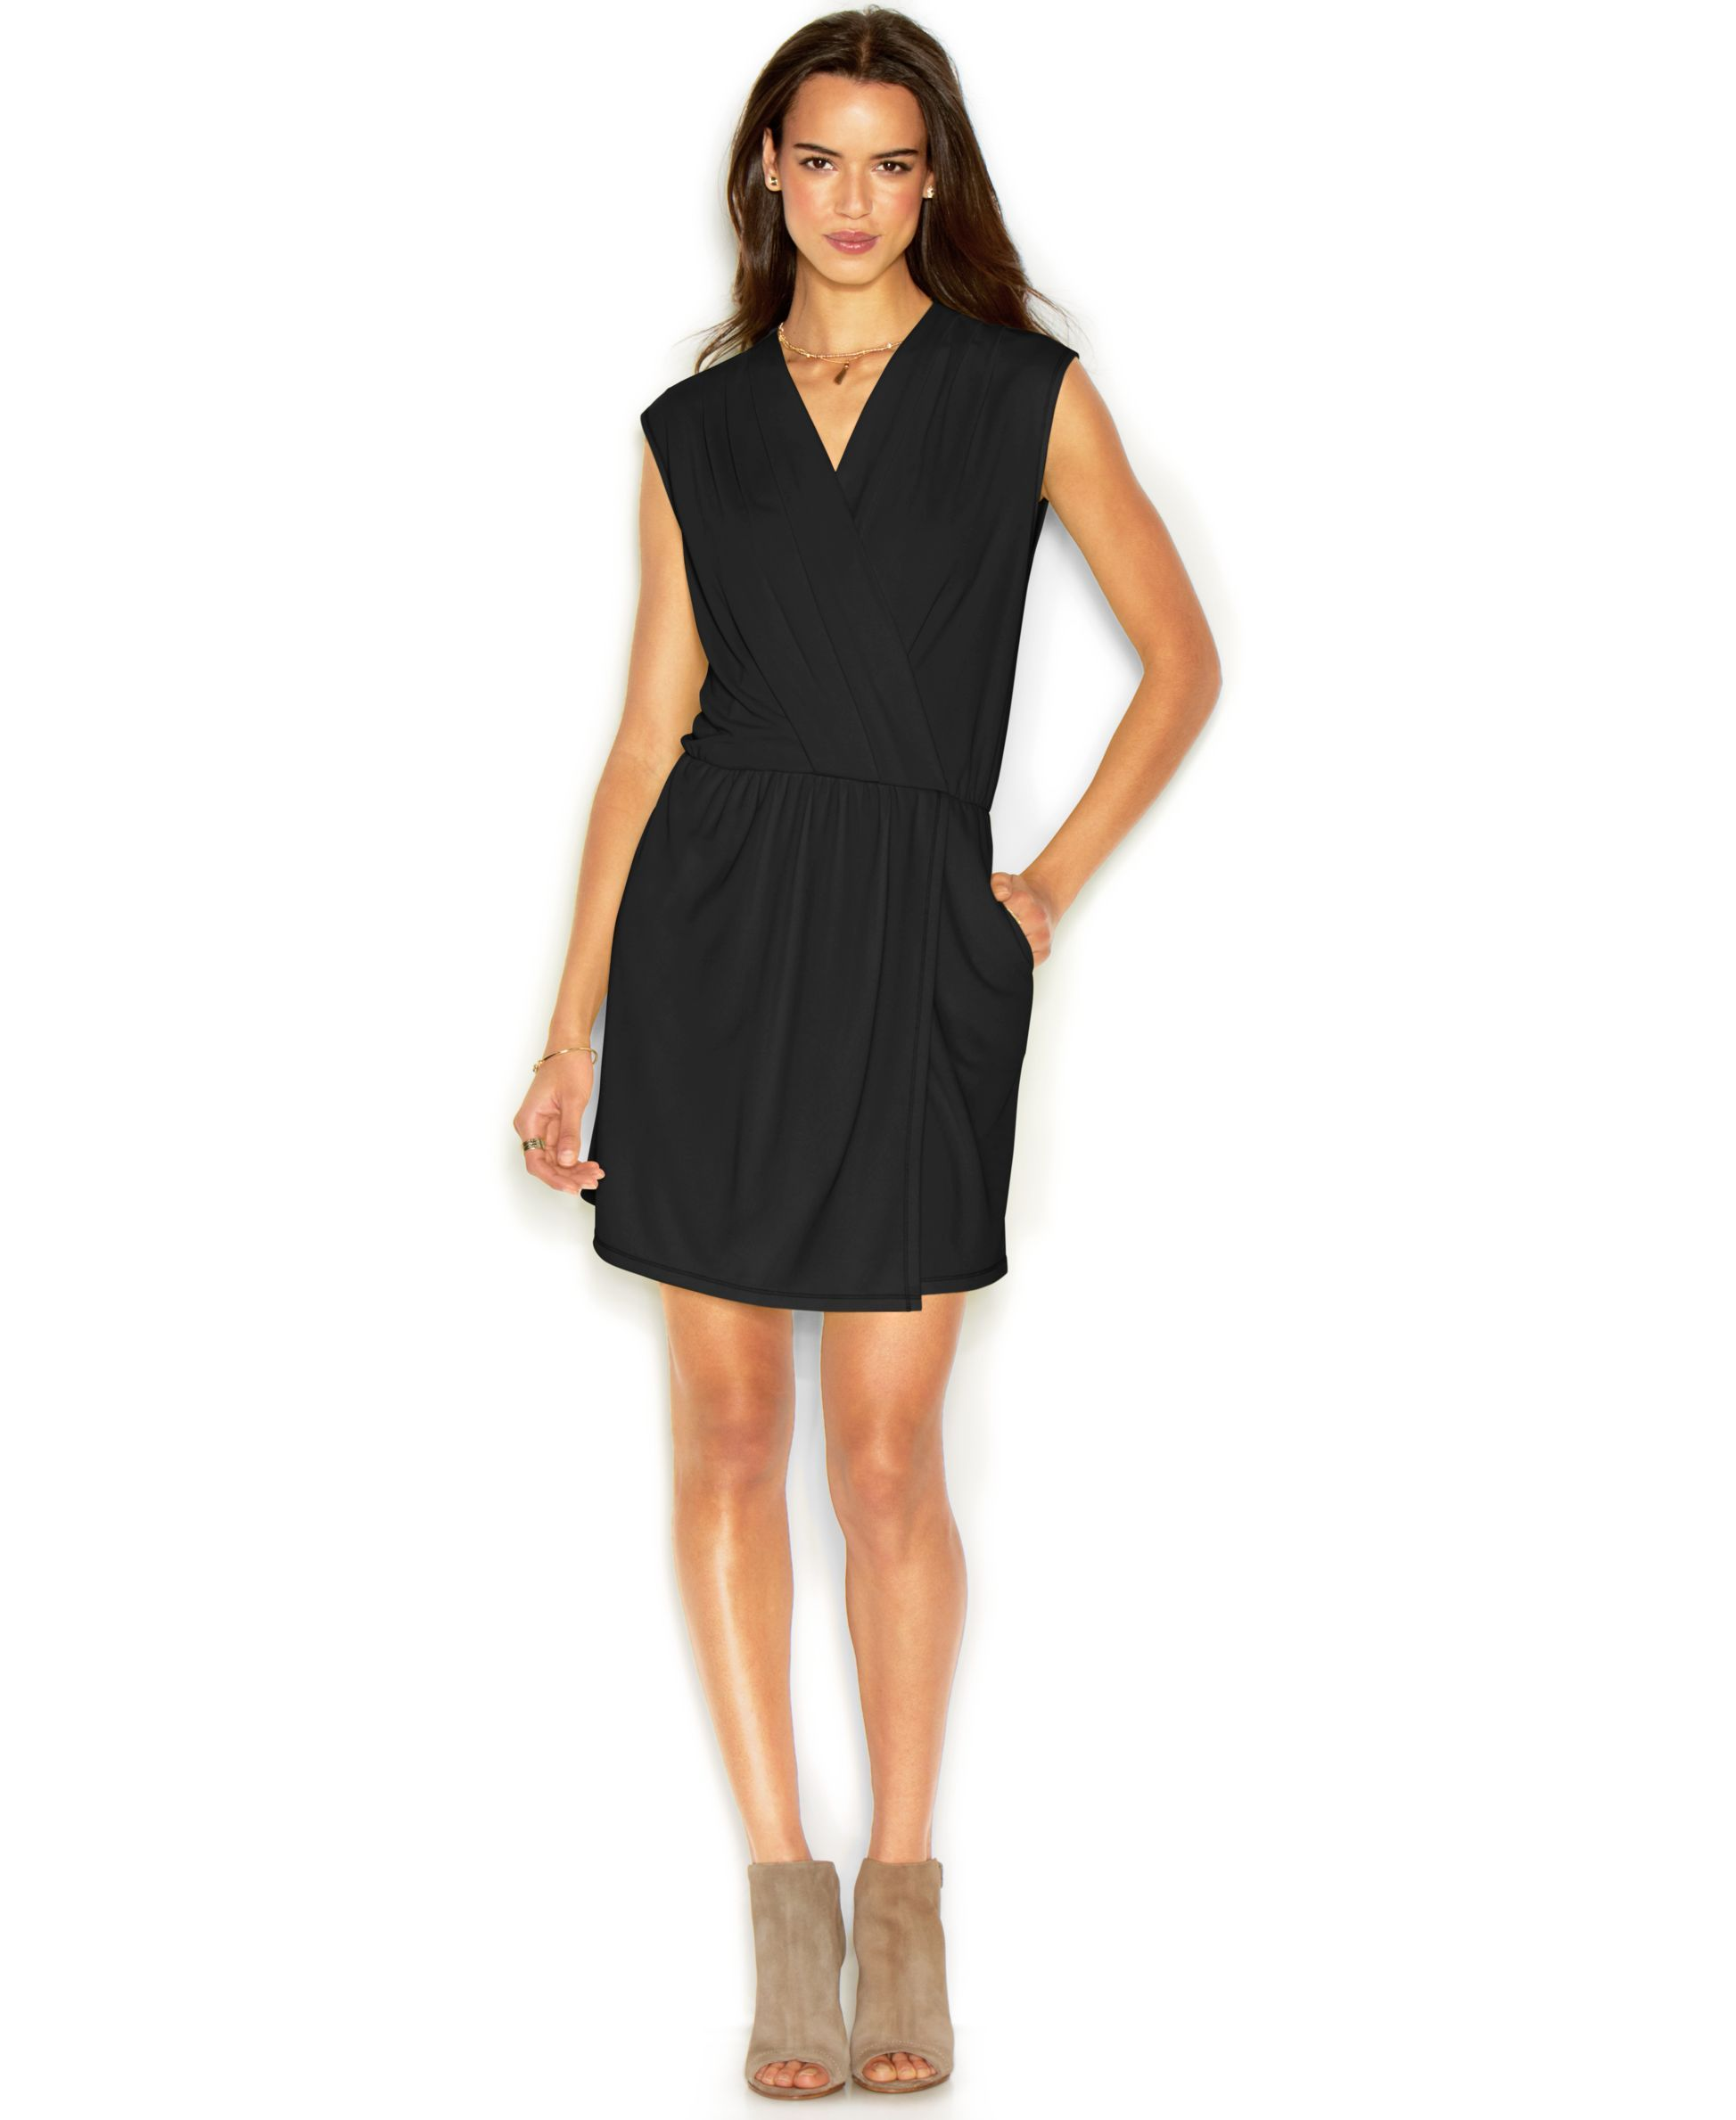 Rachel Roy 24 Hour Dress Sleeveless Surplice Neck Faux Wrap